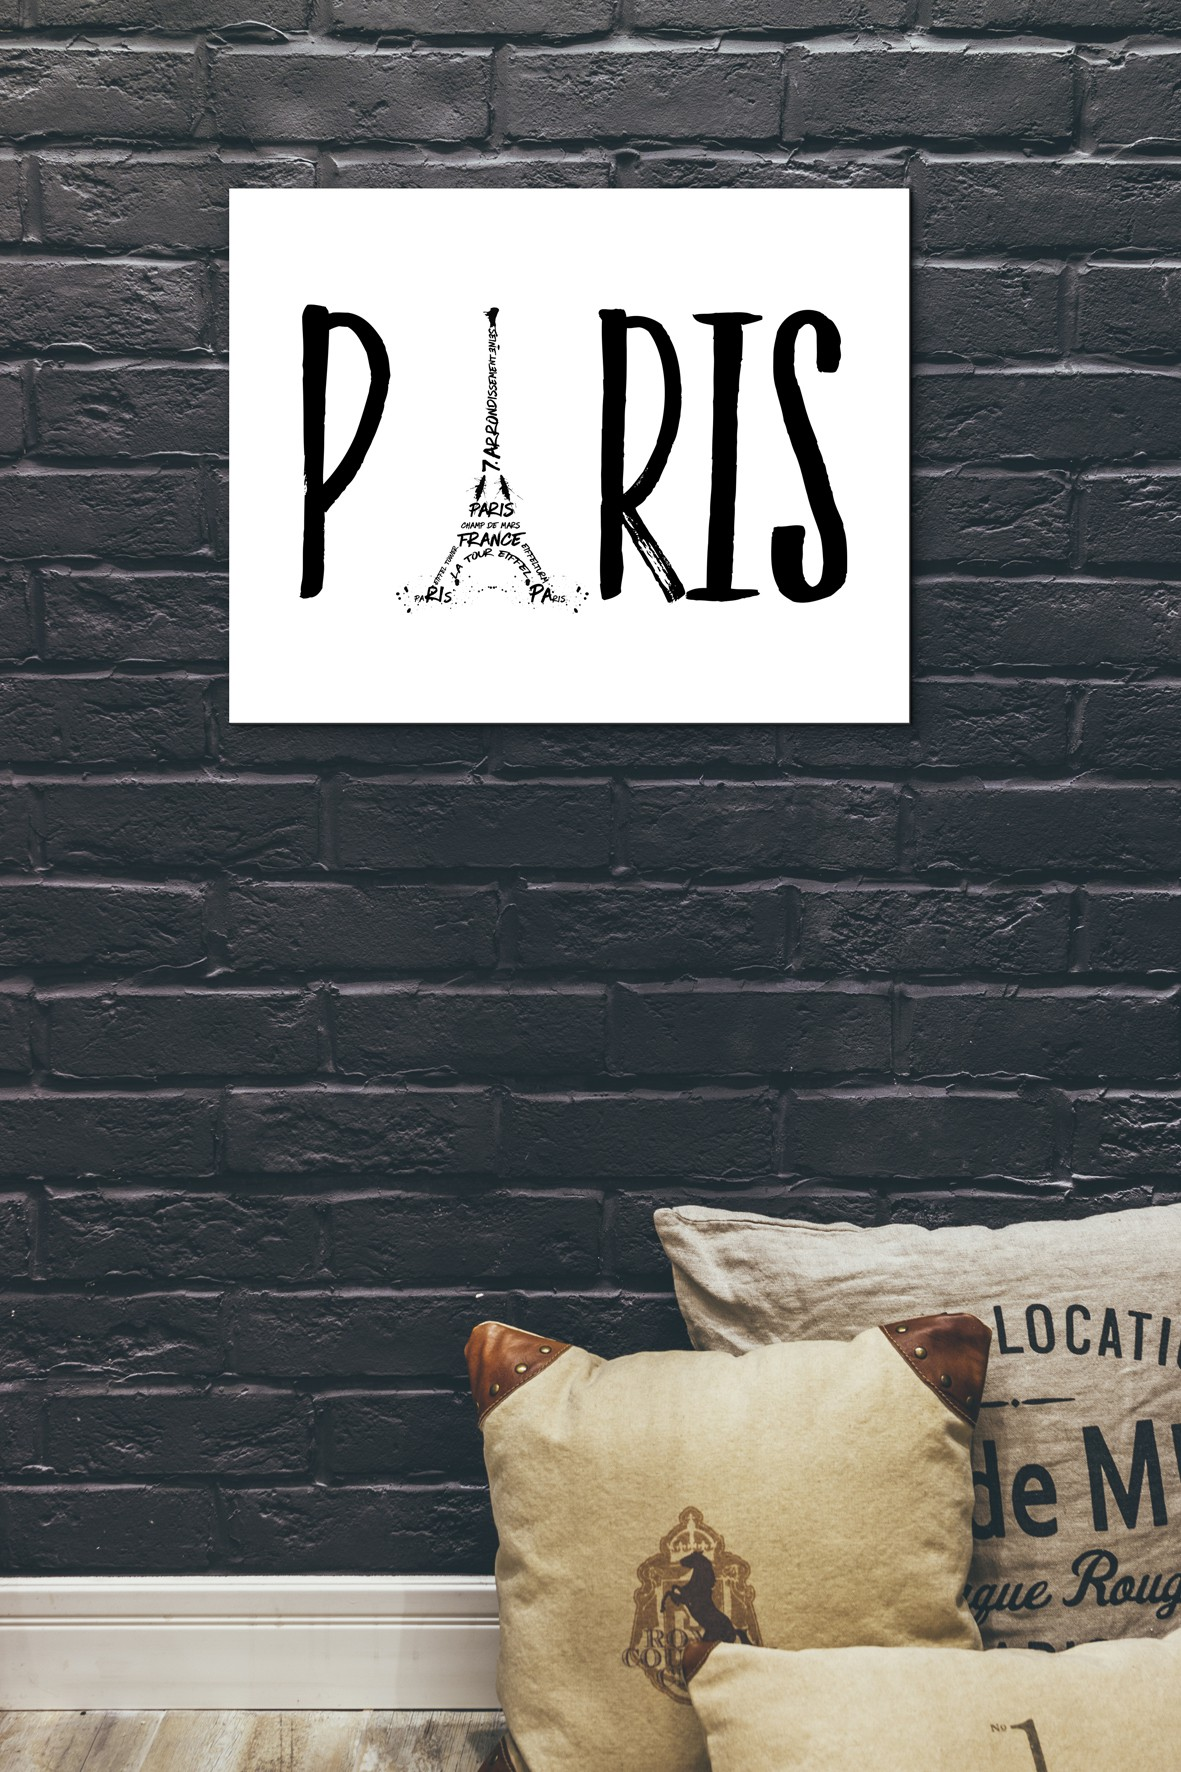 PARIS Typografie - OhMyPrints Onlineshop